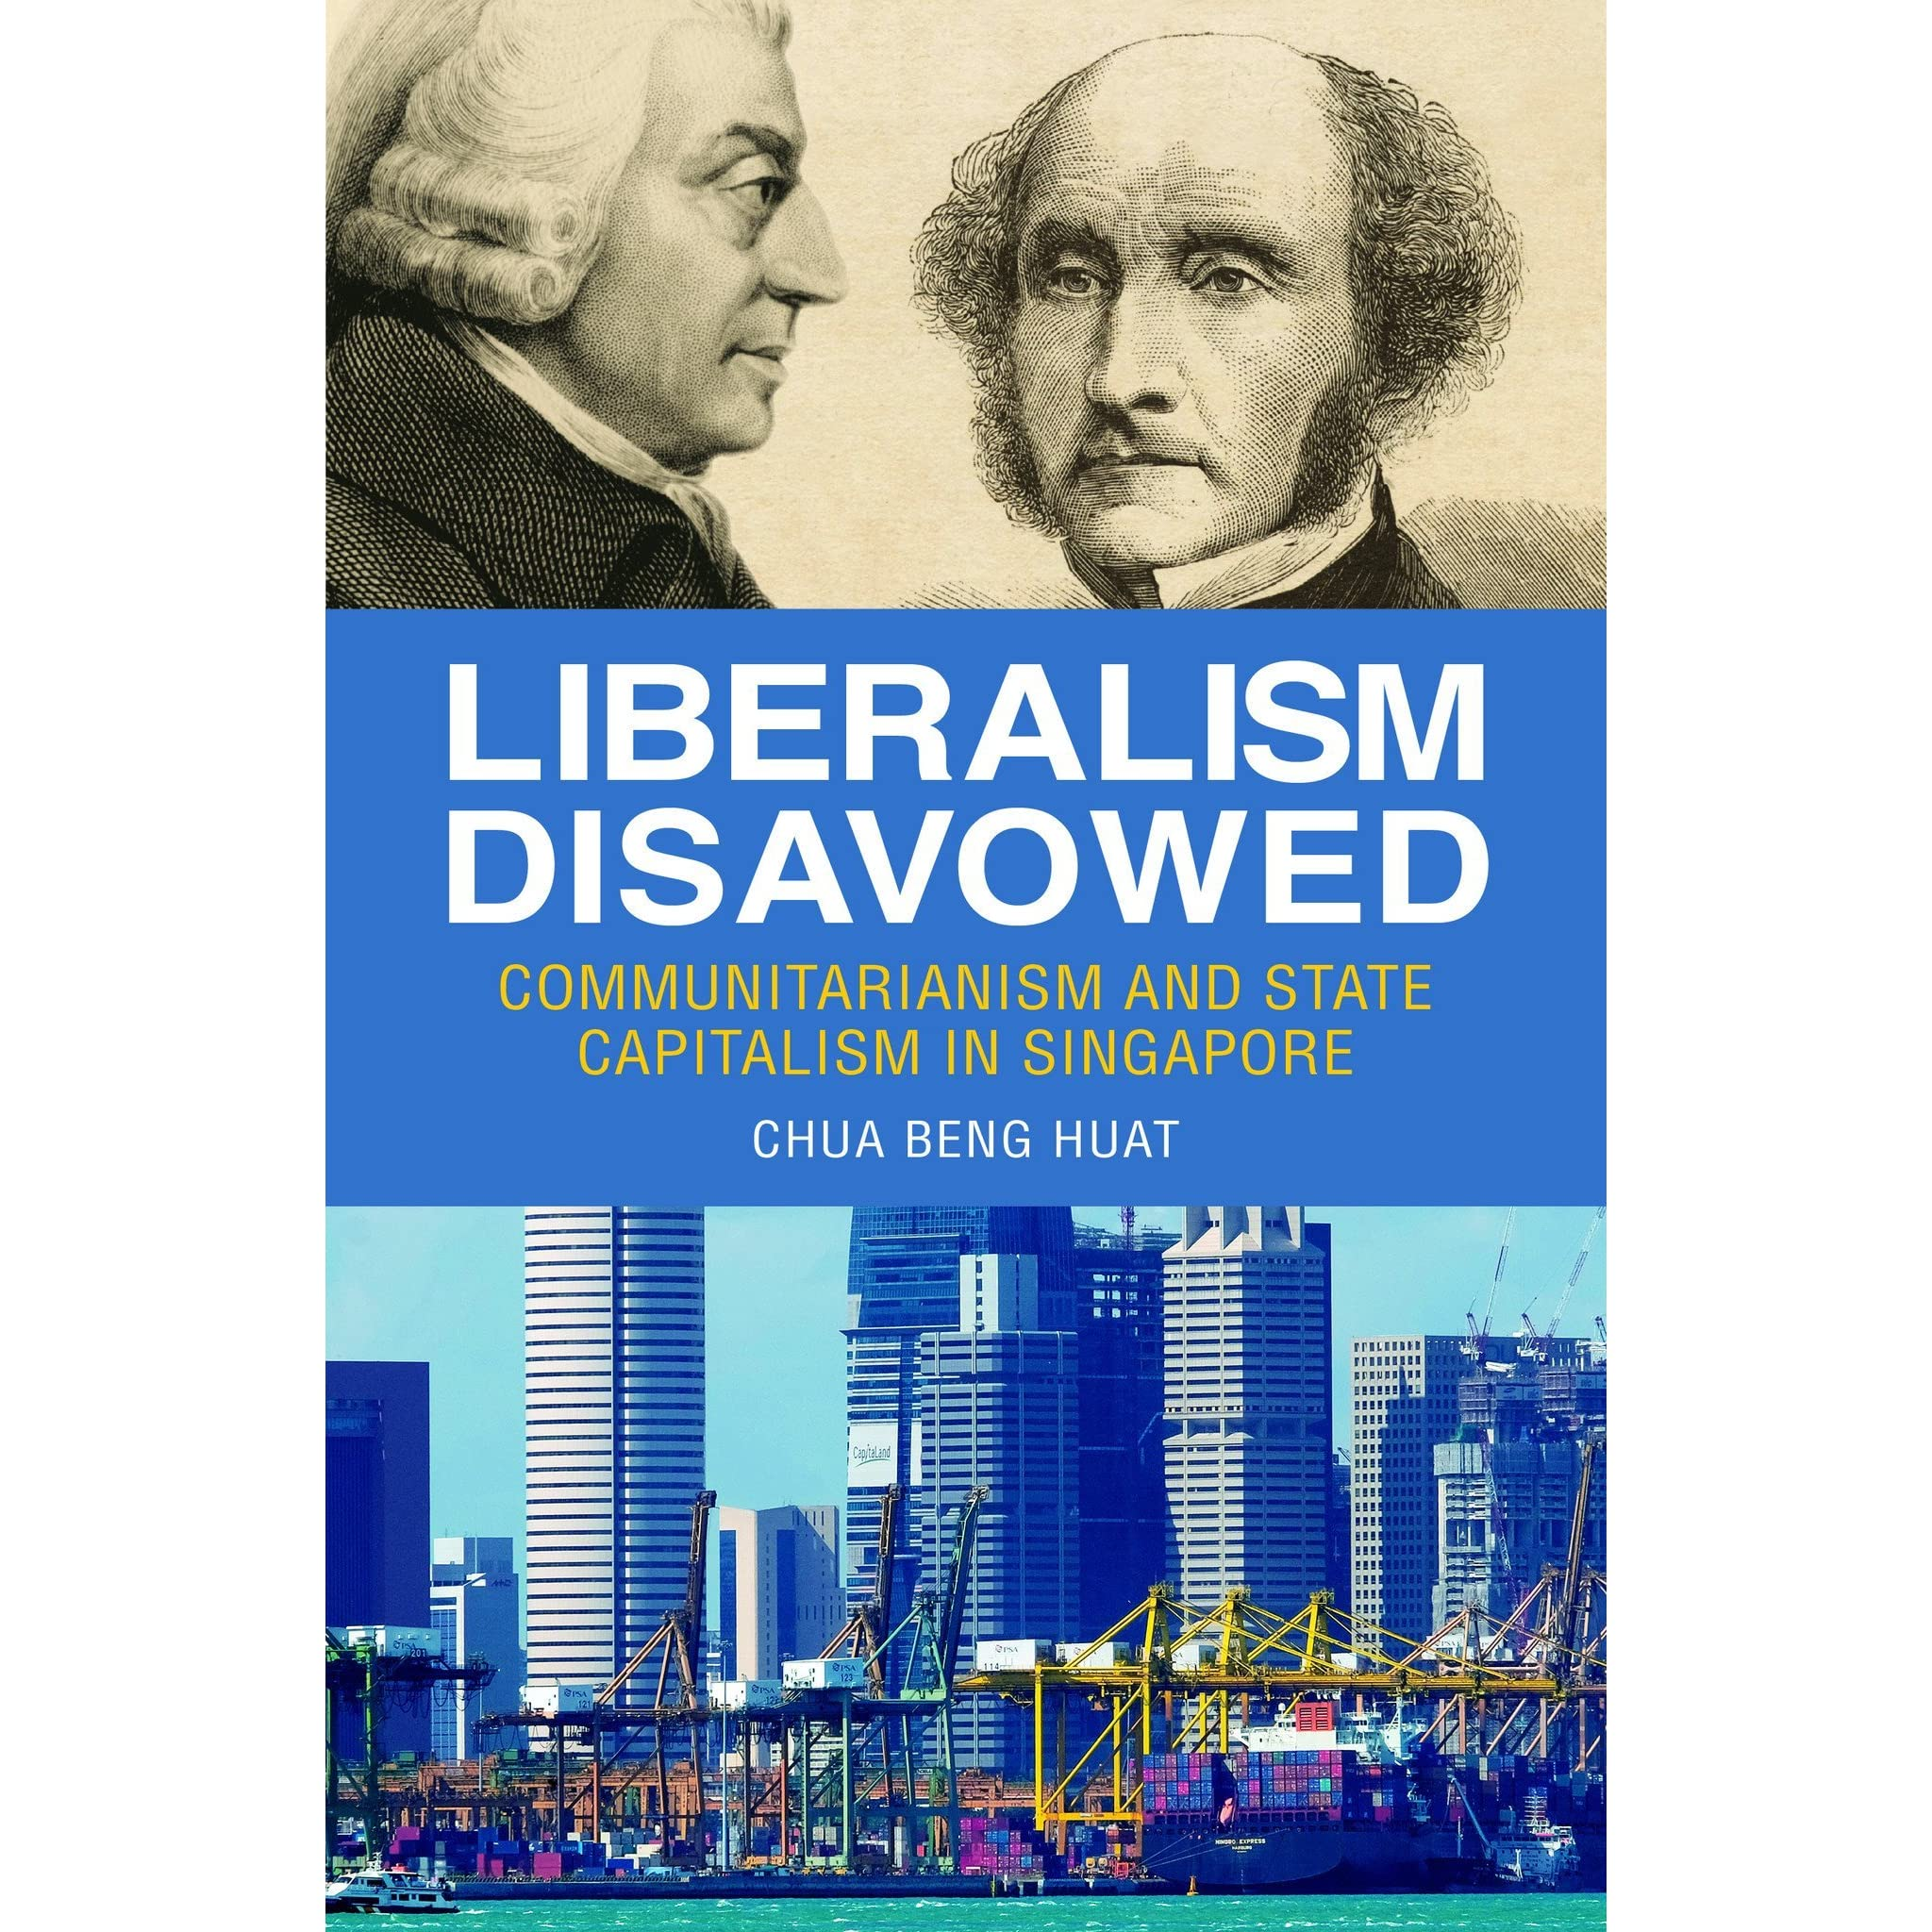 Liberalism Disavowed: Communitarianism and State Capitalism in Singapore by  Beng Huat Chua